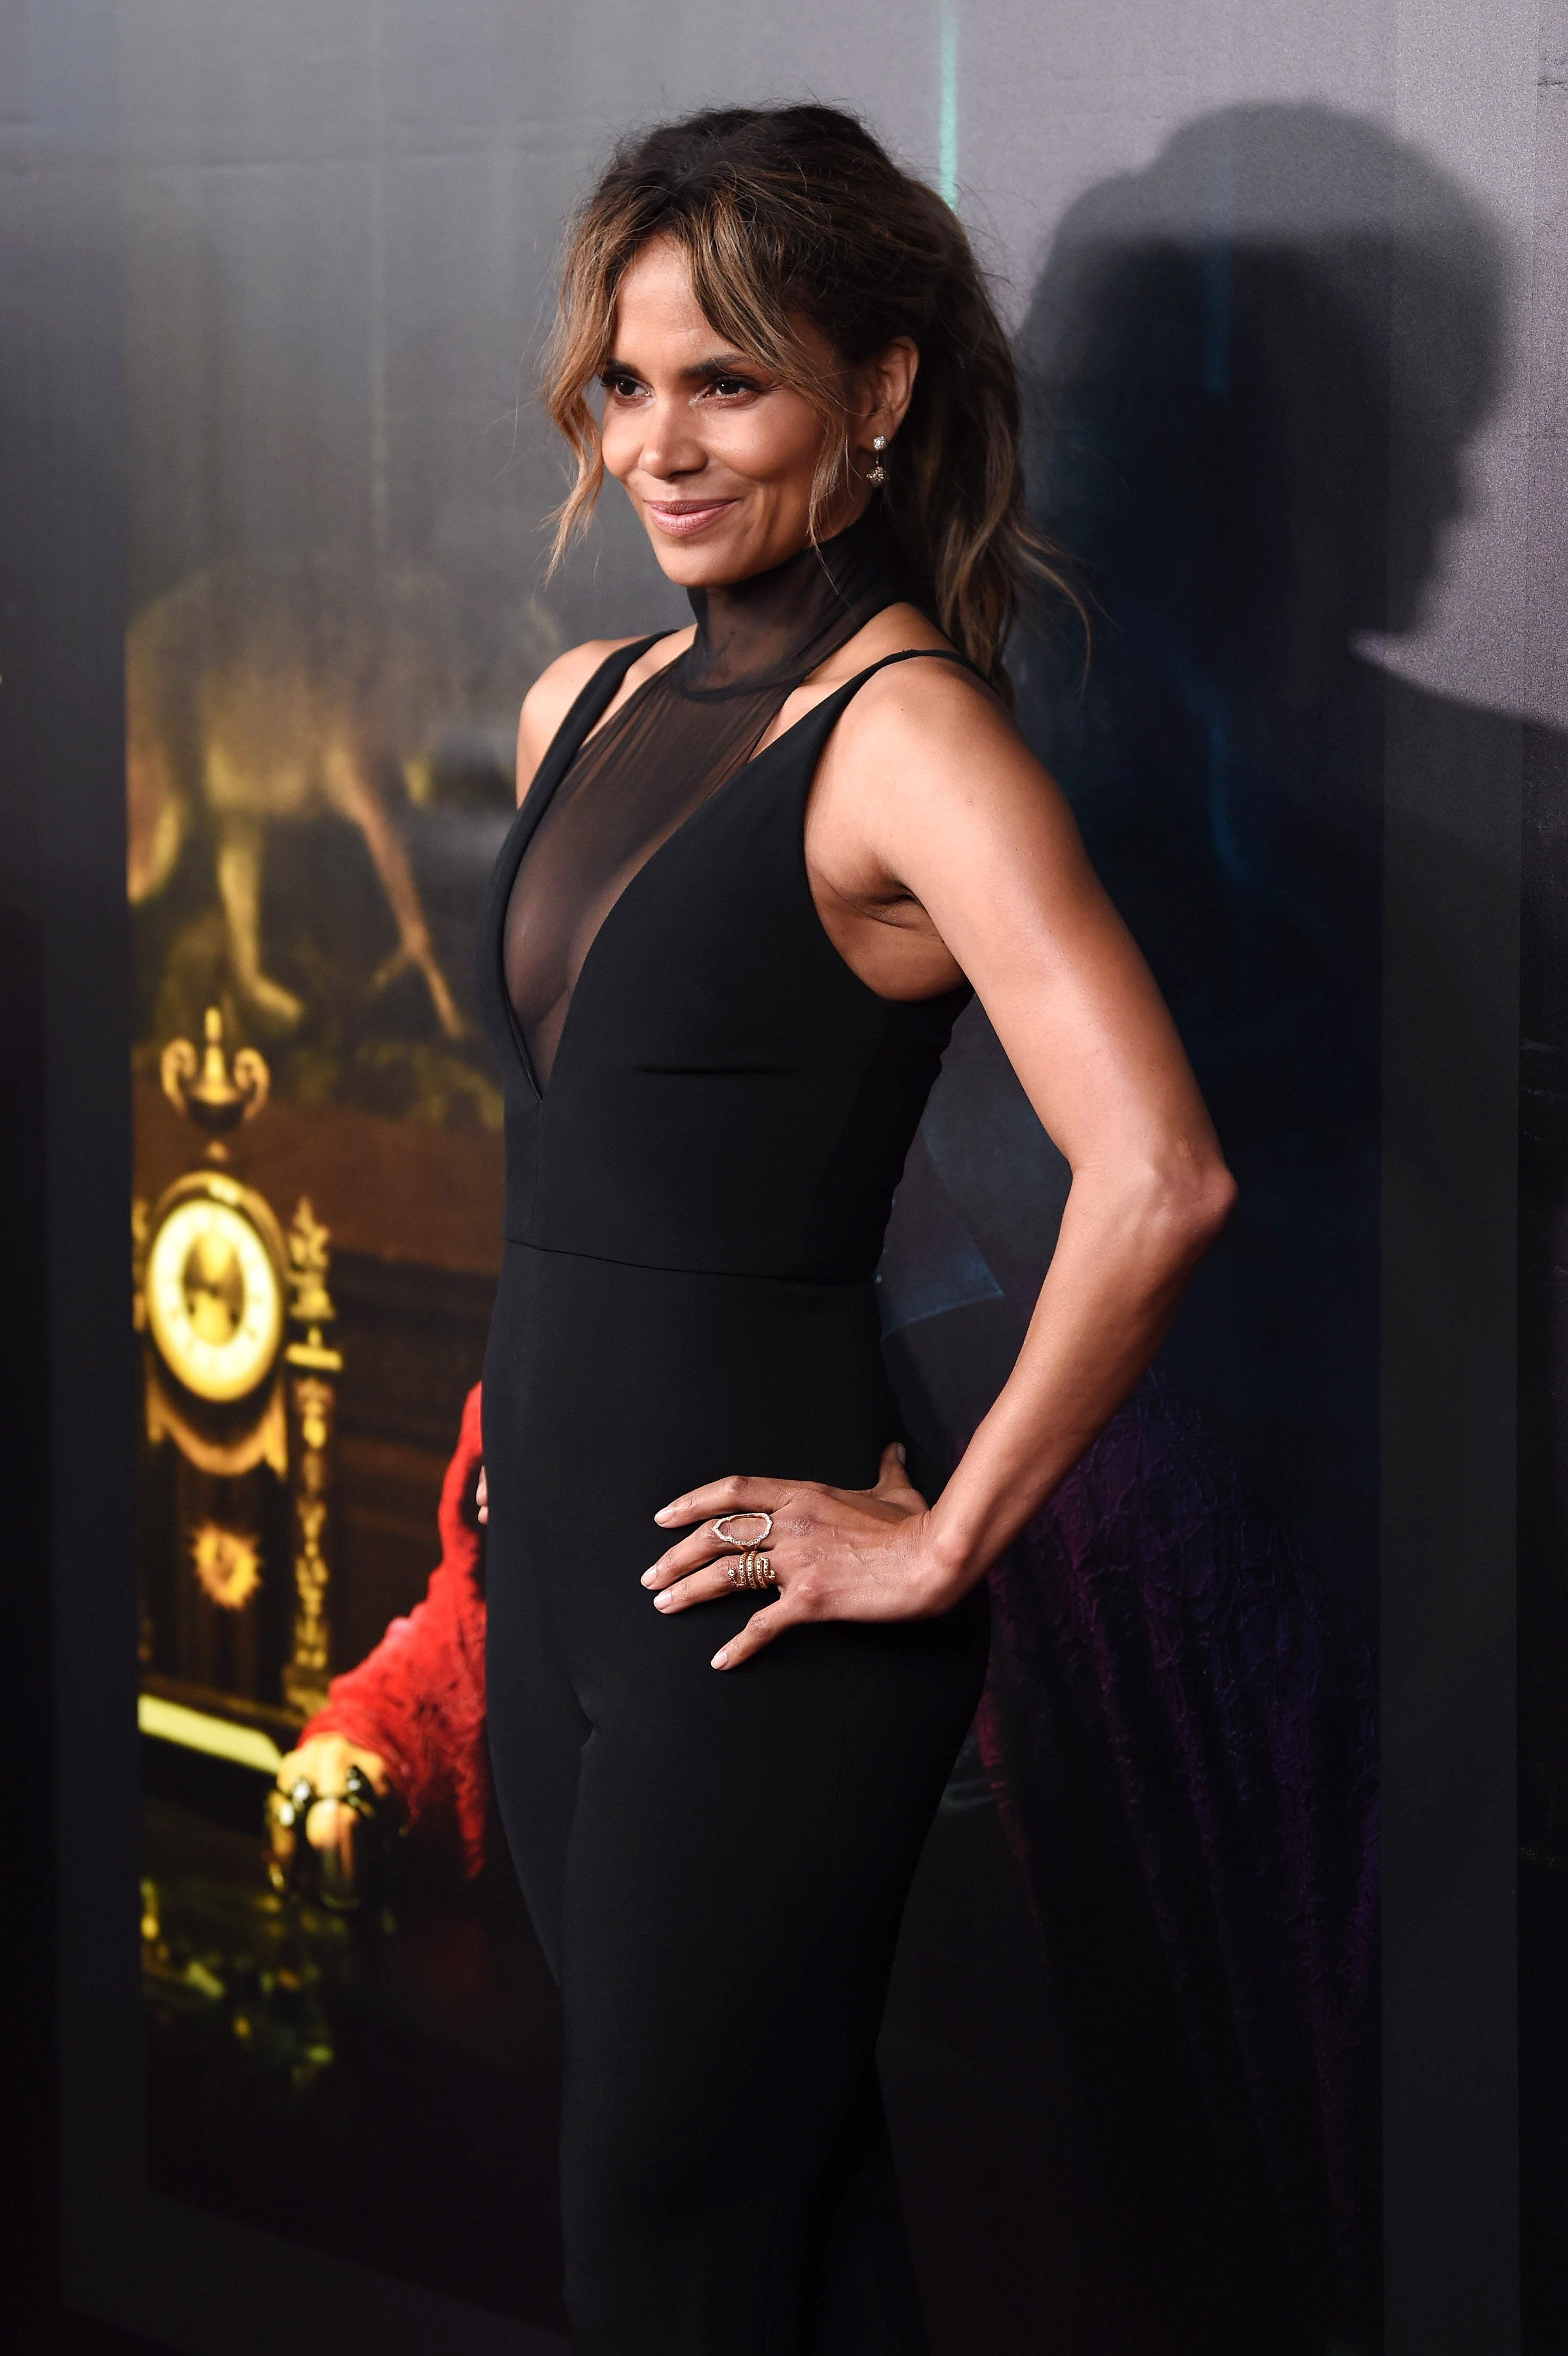 """Halle Berry attends the premiere of """"John Wick: Chapter 3"""" in New York City on May 9, 2019 